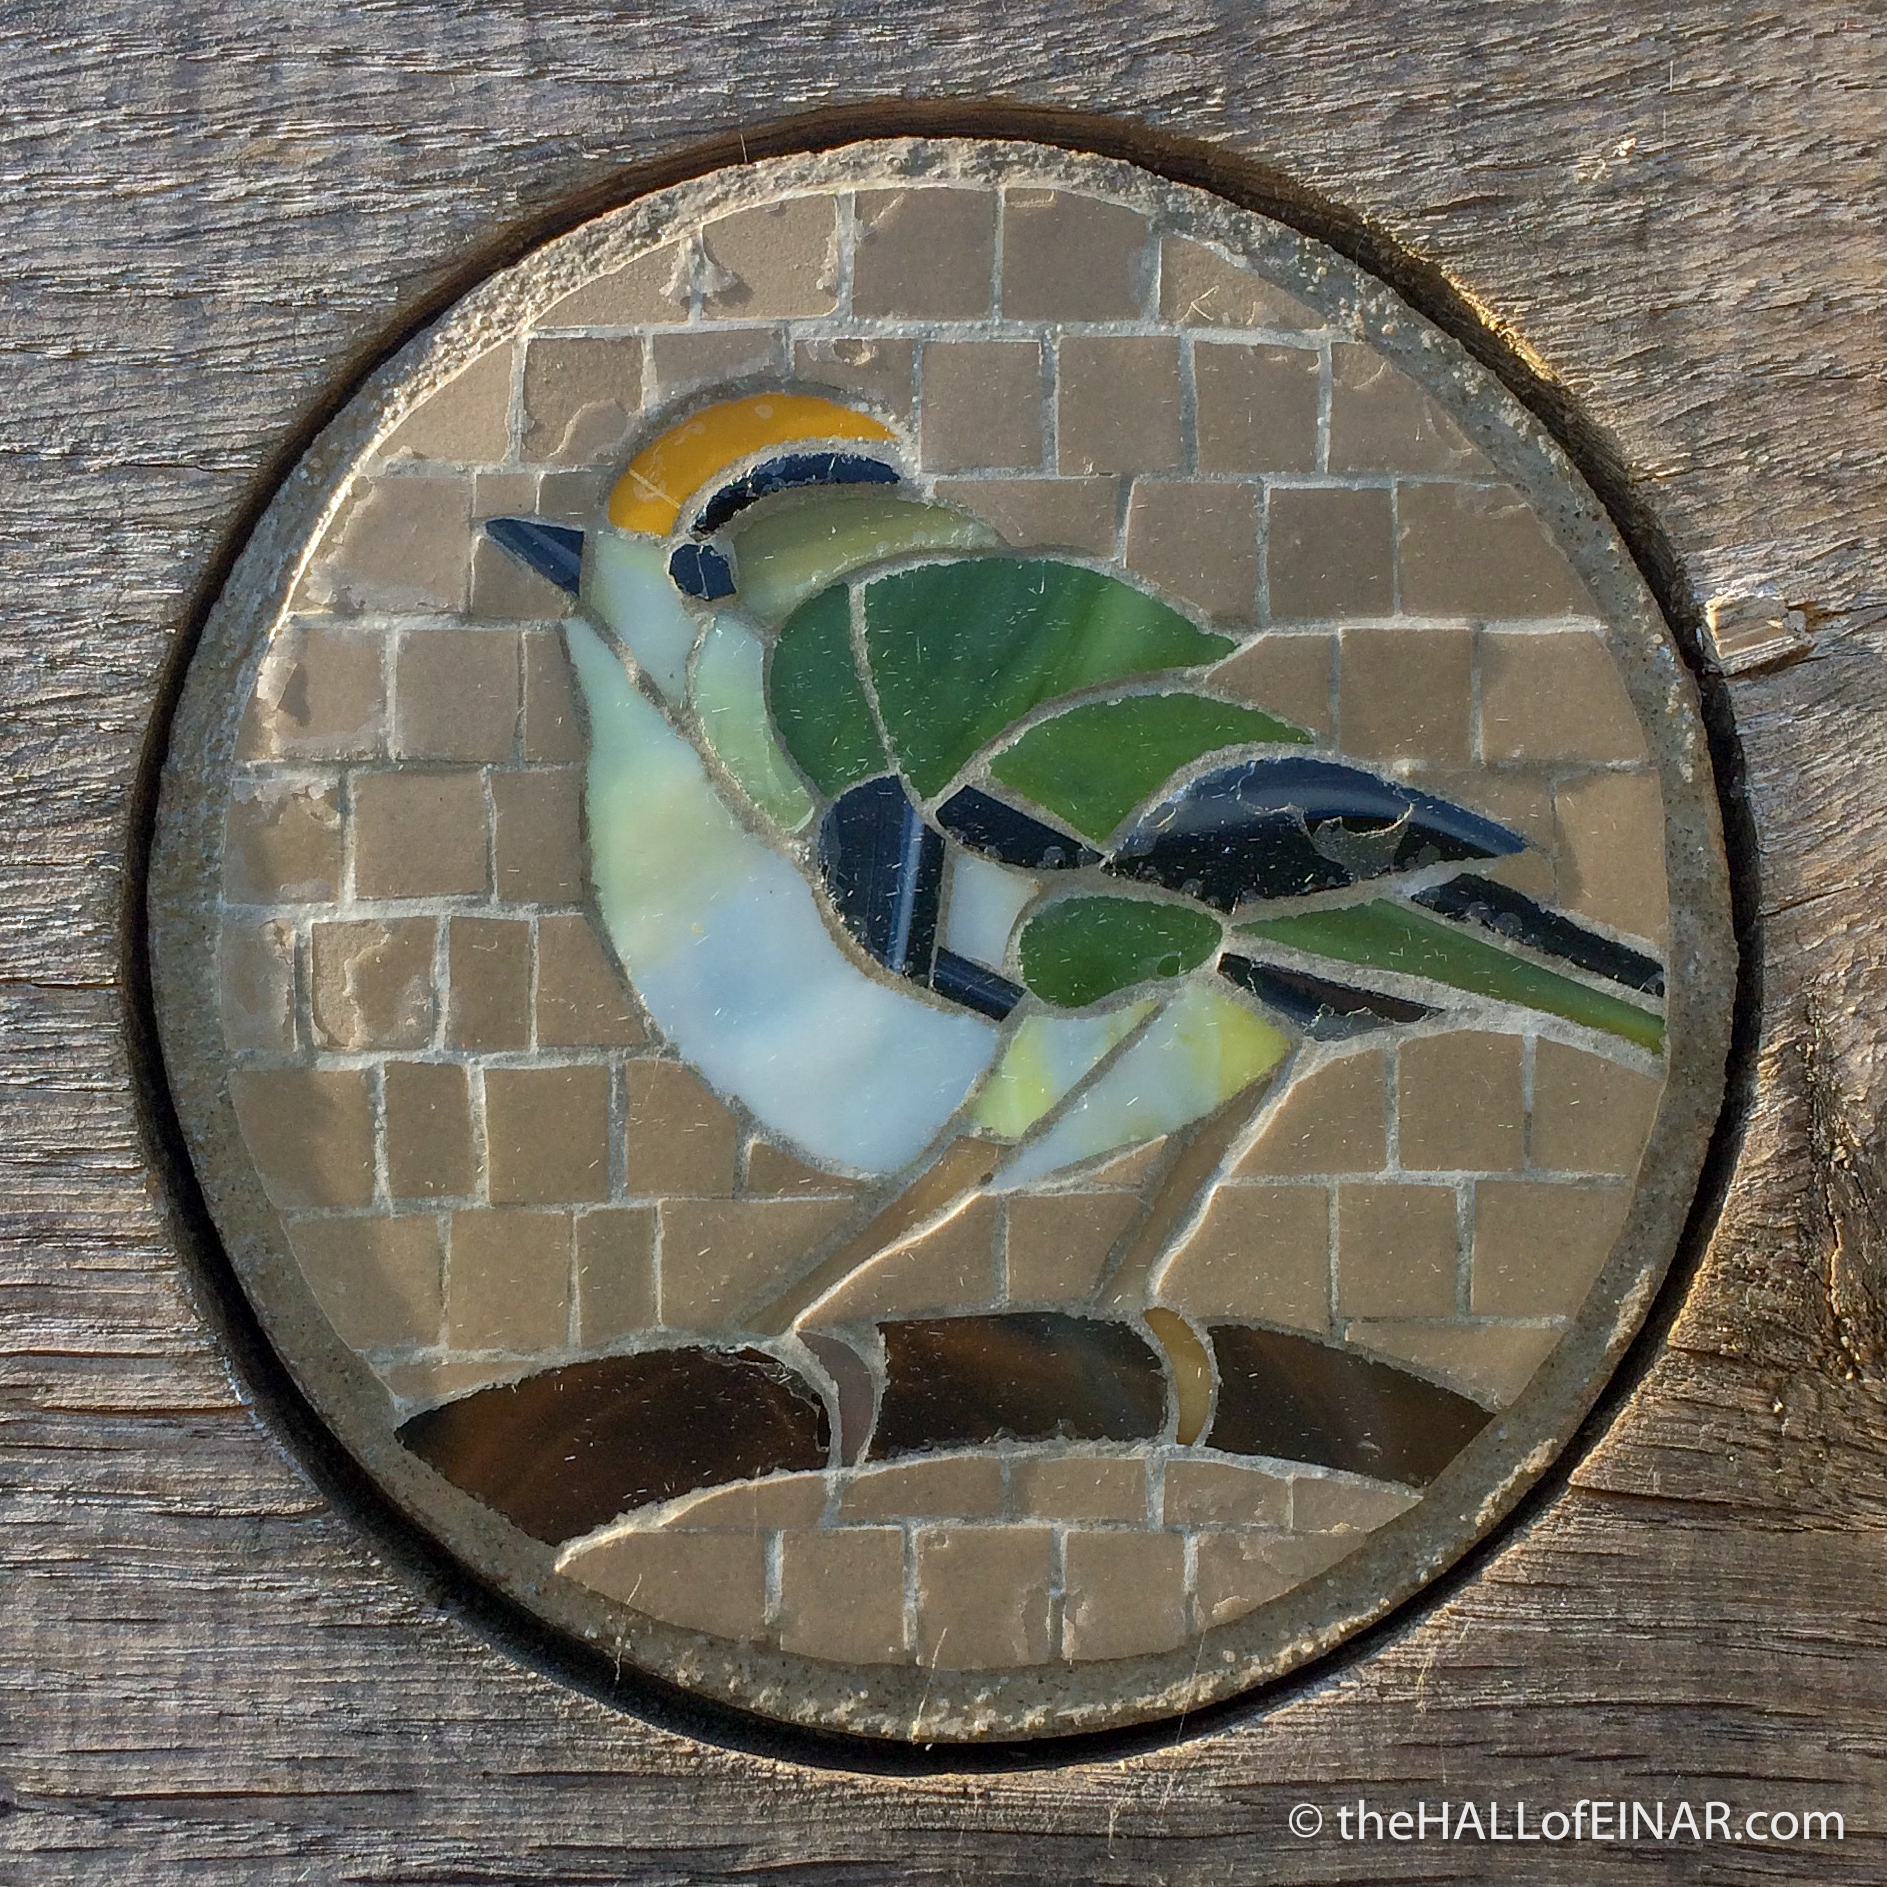 Goldcrest Sign - Dove Stone - The Hall of Einar - photograph (c) David Bailey (not the)